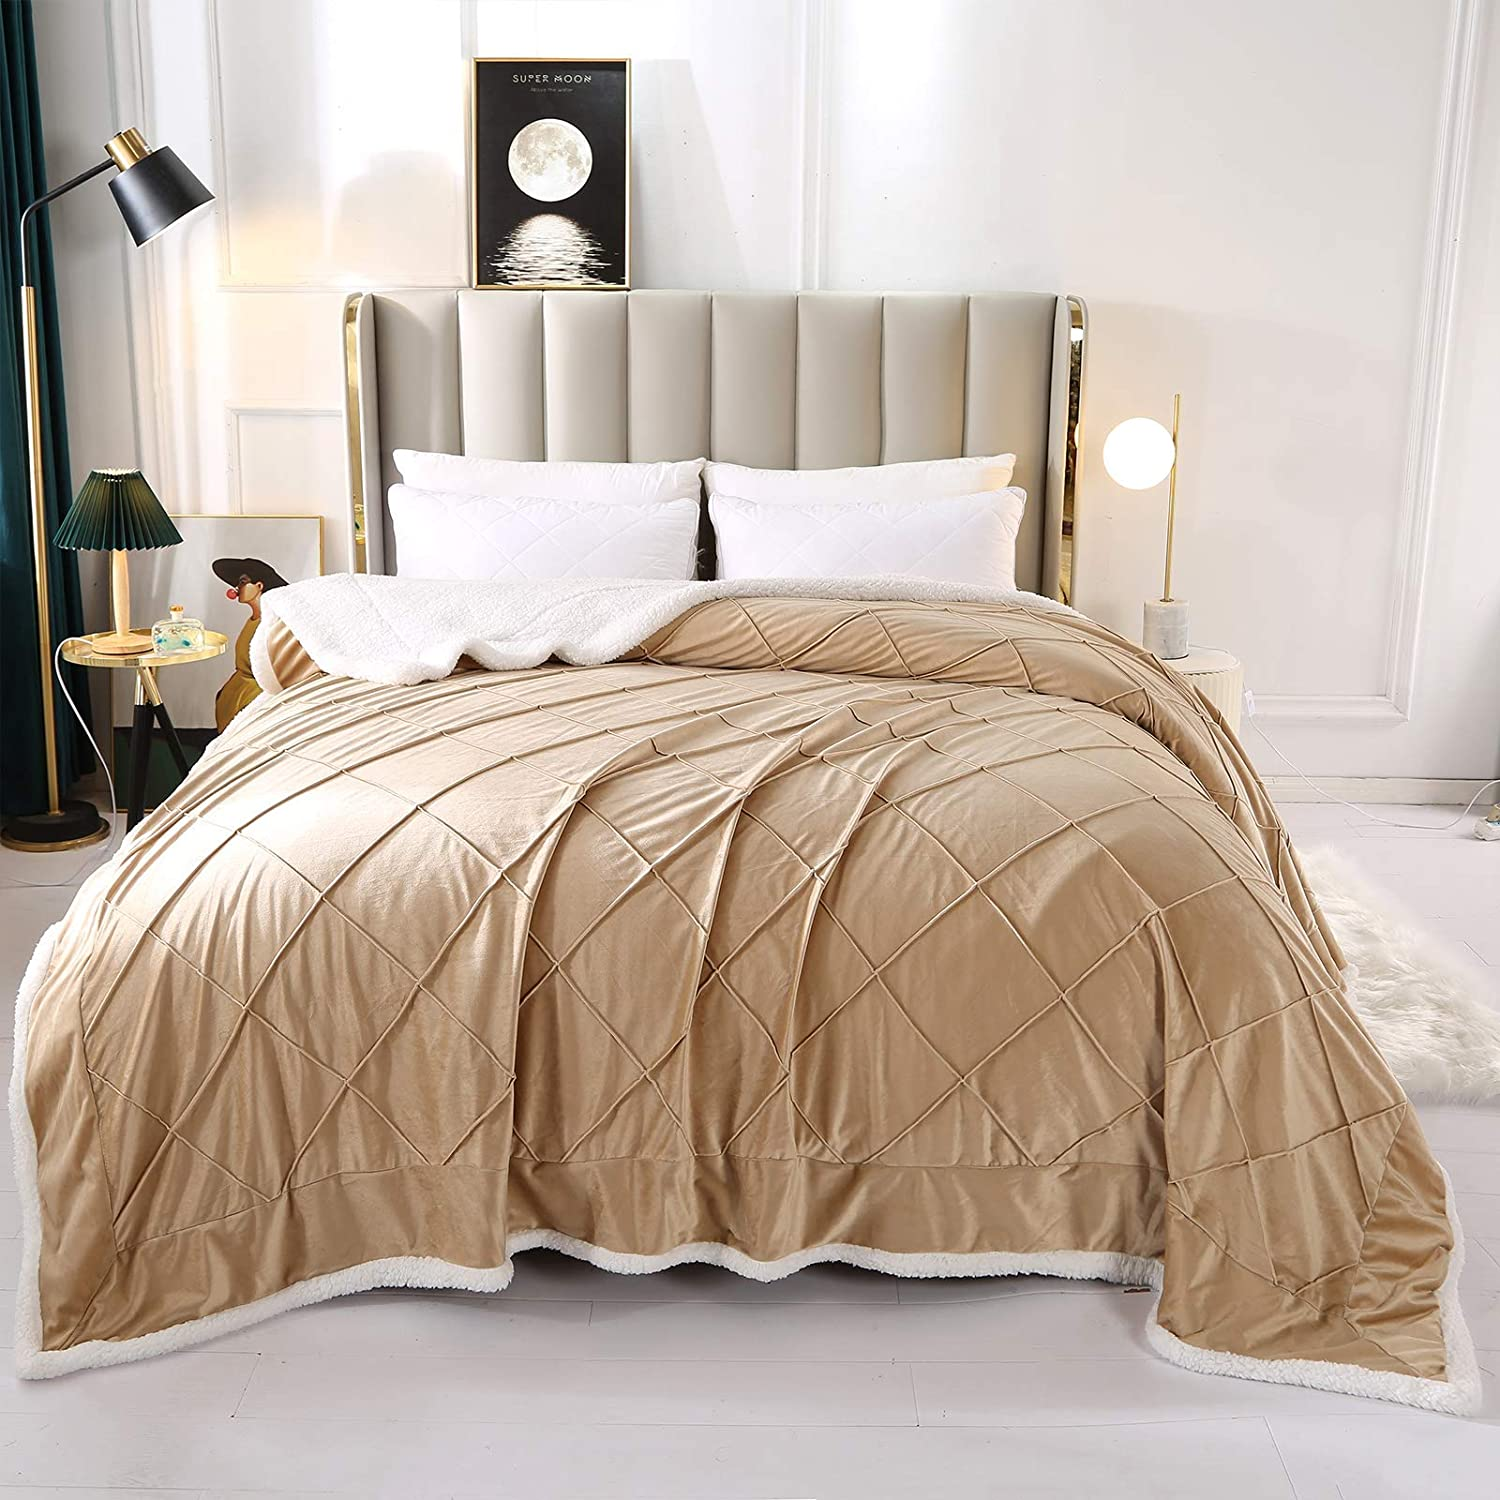 87x95 Inches-Faux Fur King Size-Winter Bliss-Sherpa Comforter-1 Piece-NEW